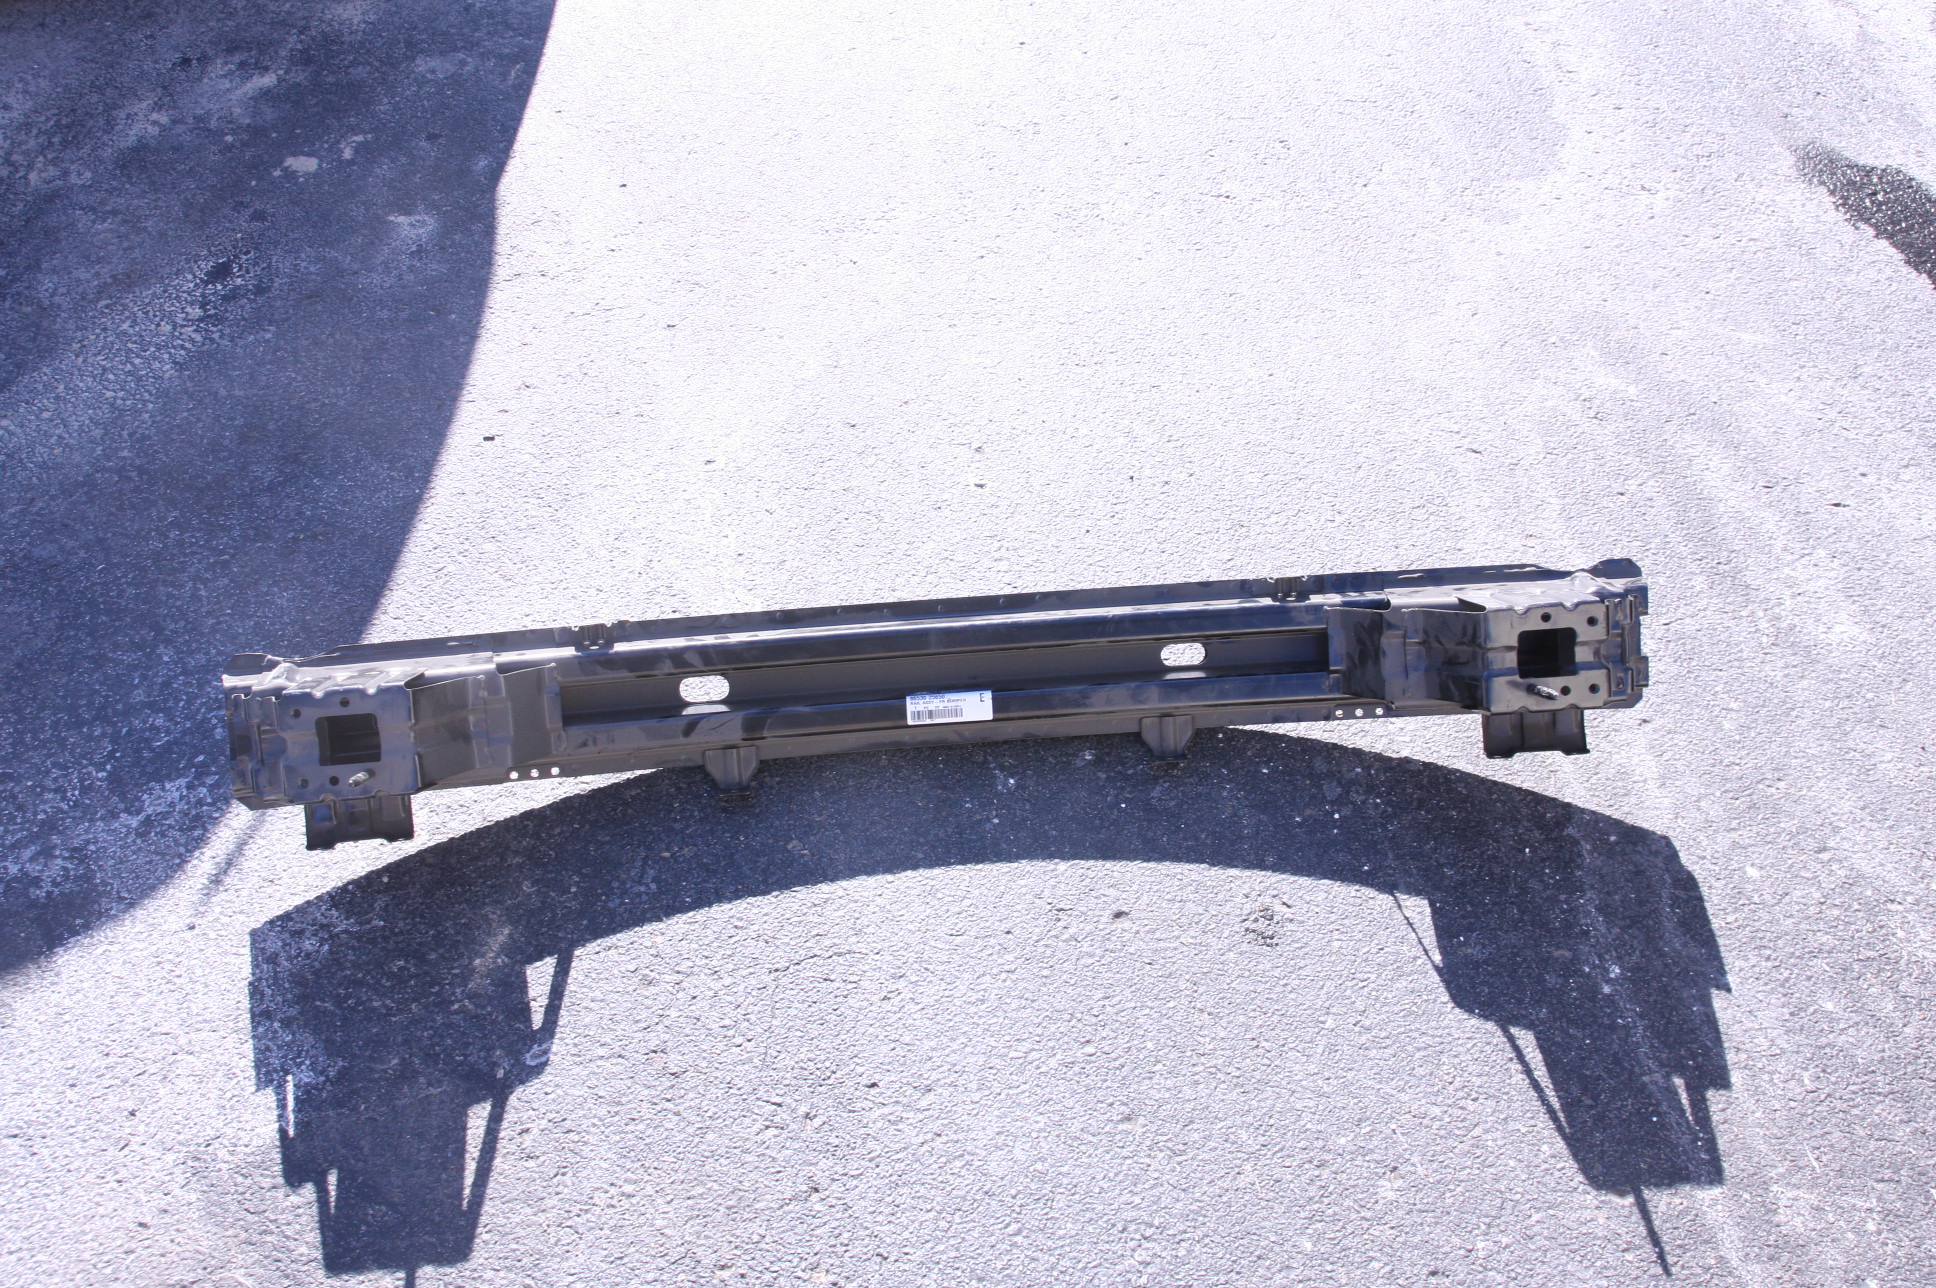 ~New OEM Hyundai 8653025650 Bumper Face Bar Reinforcement Free Shipping - image 1